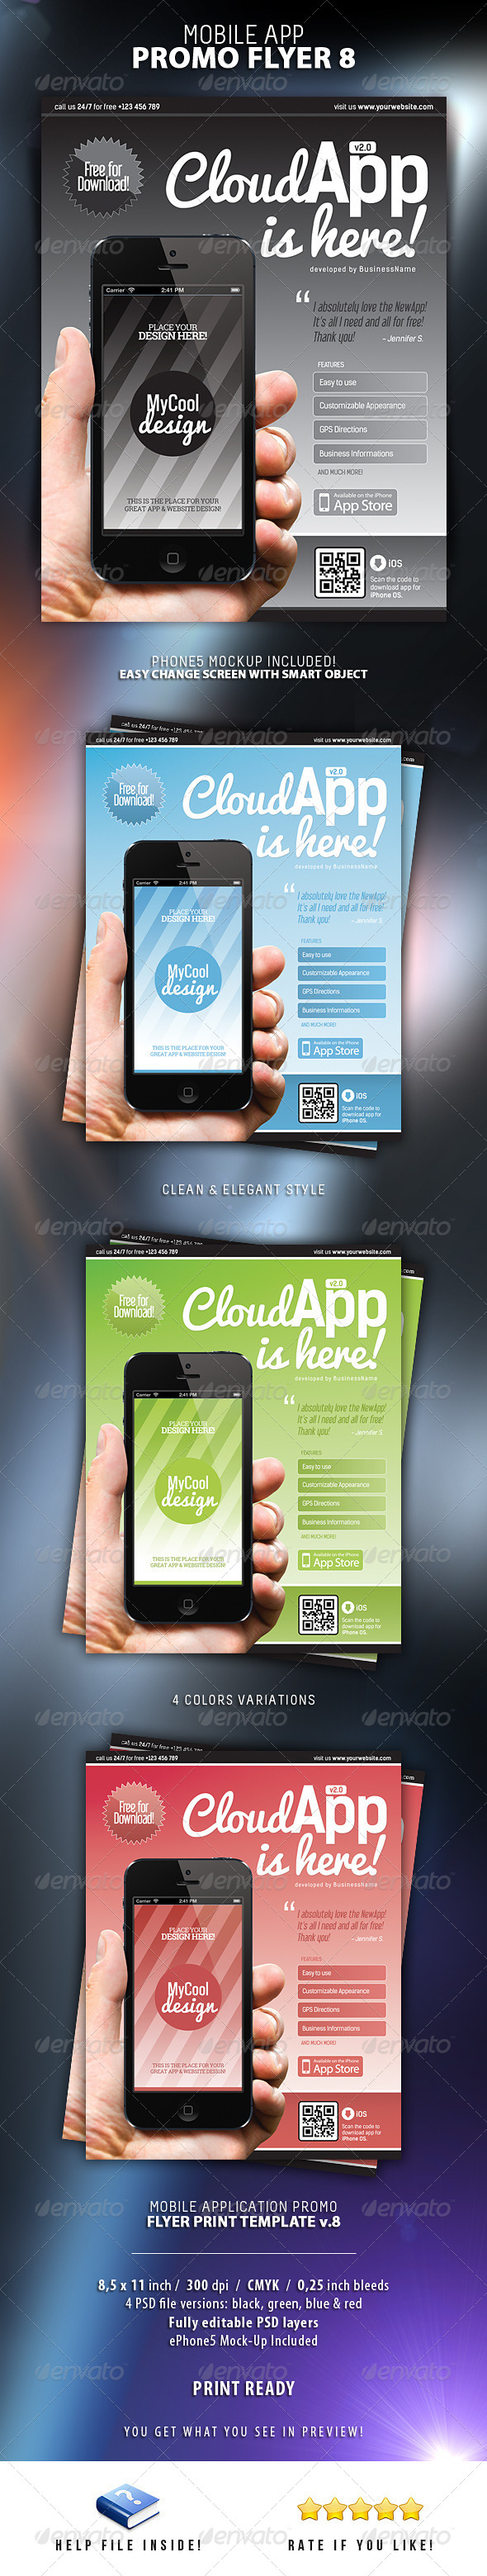 Mobile App Flyers 8 - Commerce Flyers